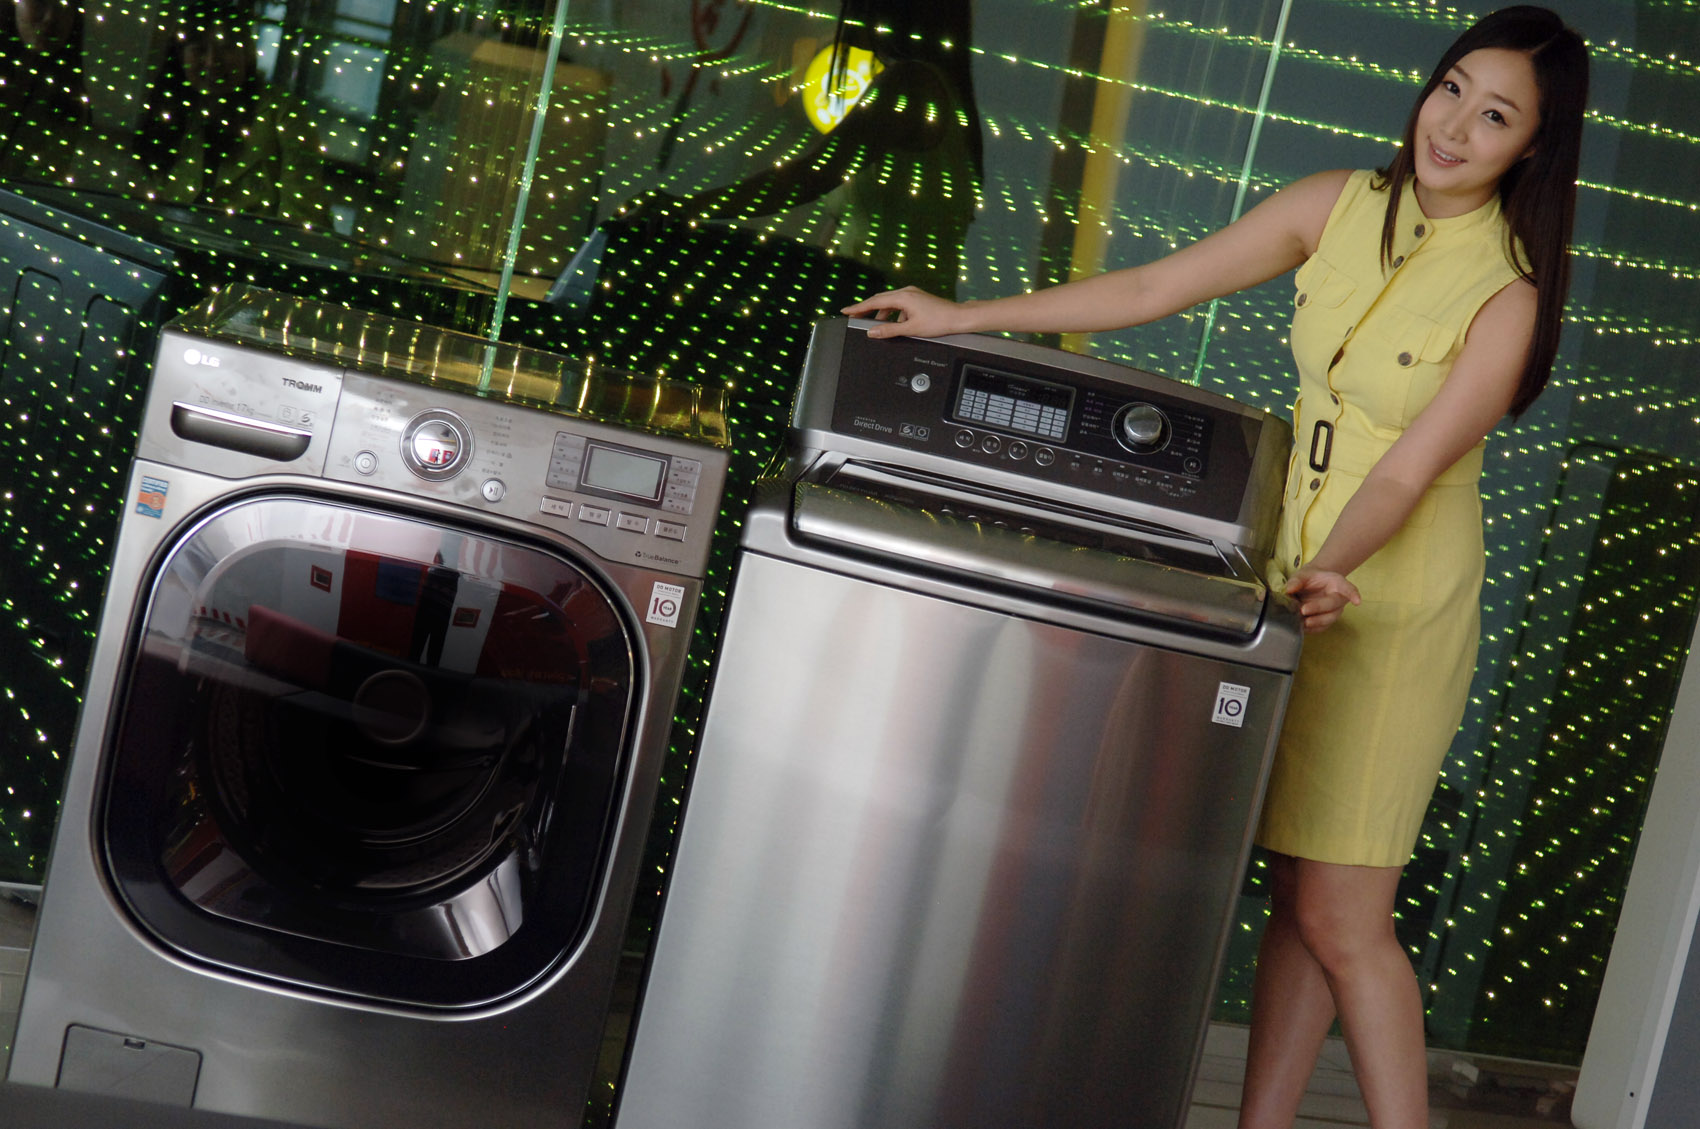 A woman posing with LG's top-load and front-load washing machines